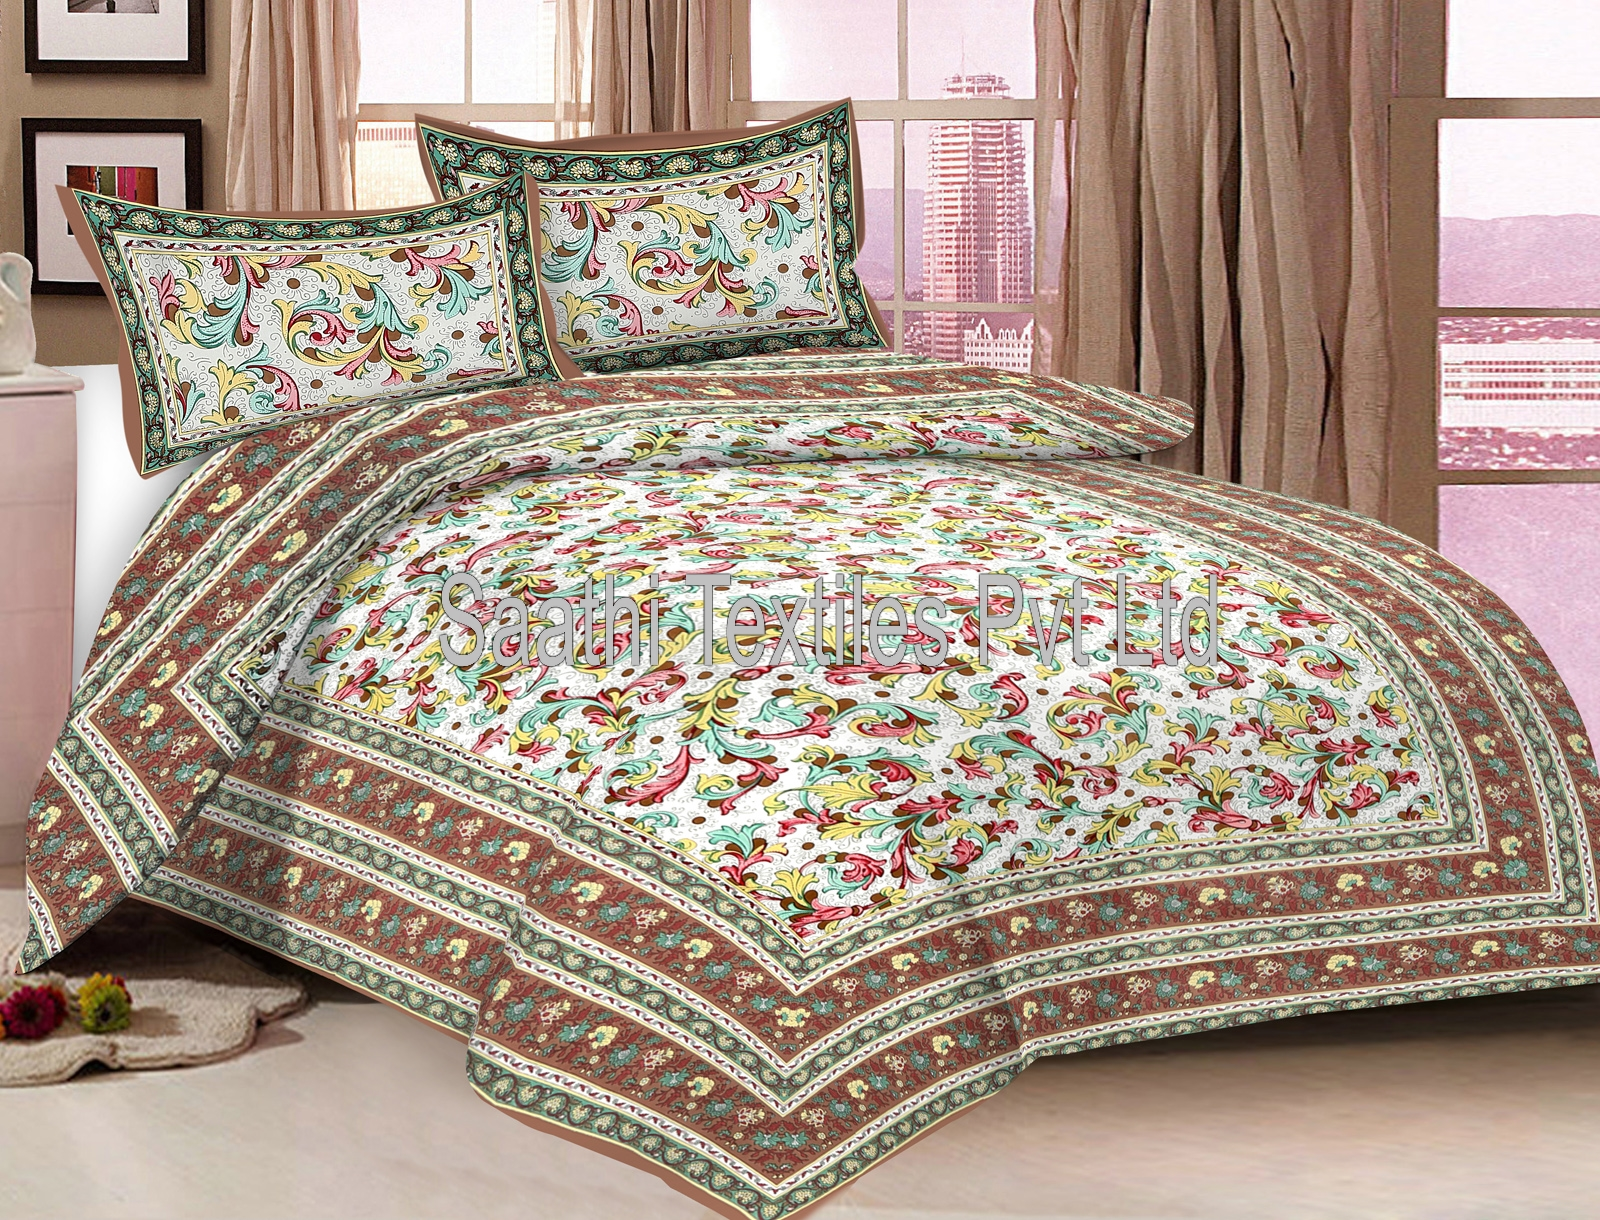 Ordinaire Designer Bed Sheets Pure Cotton Printed